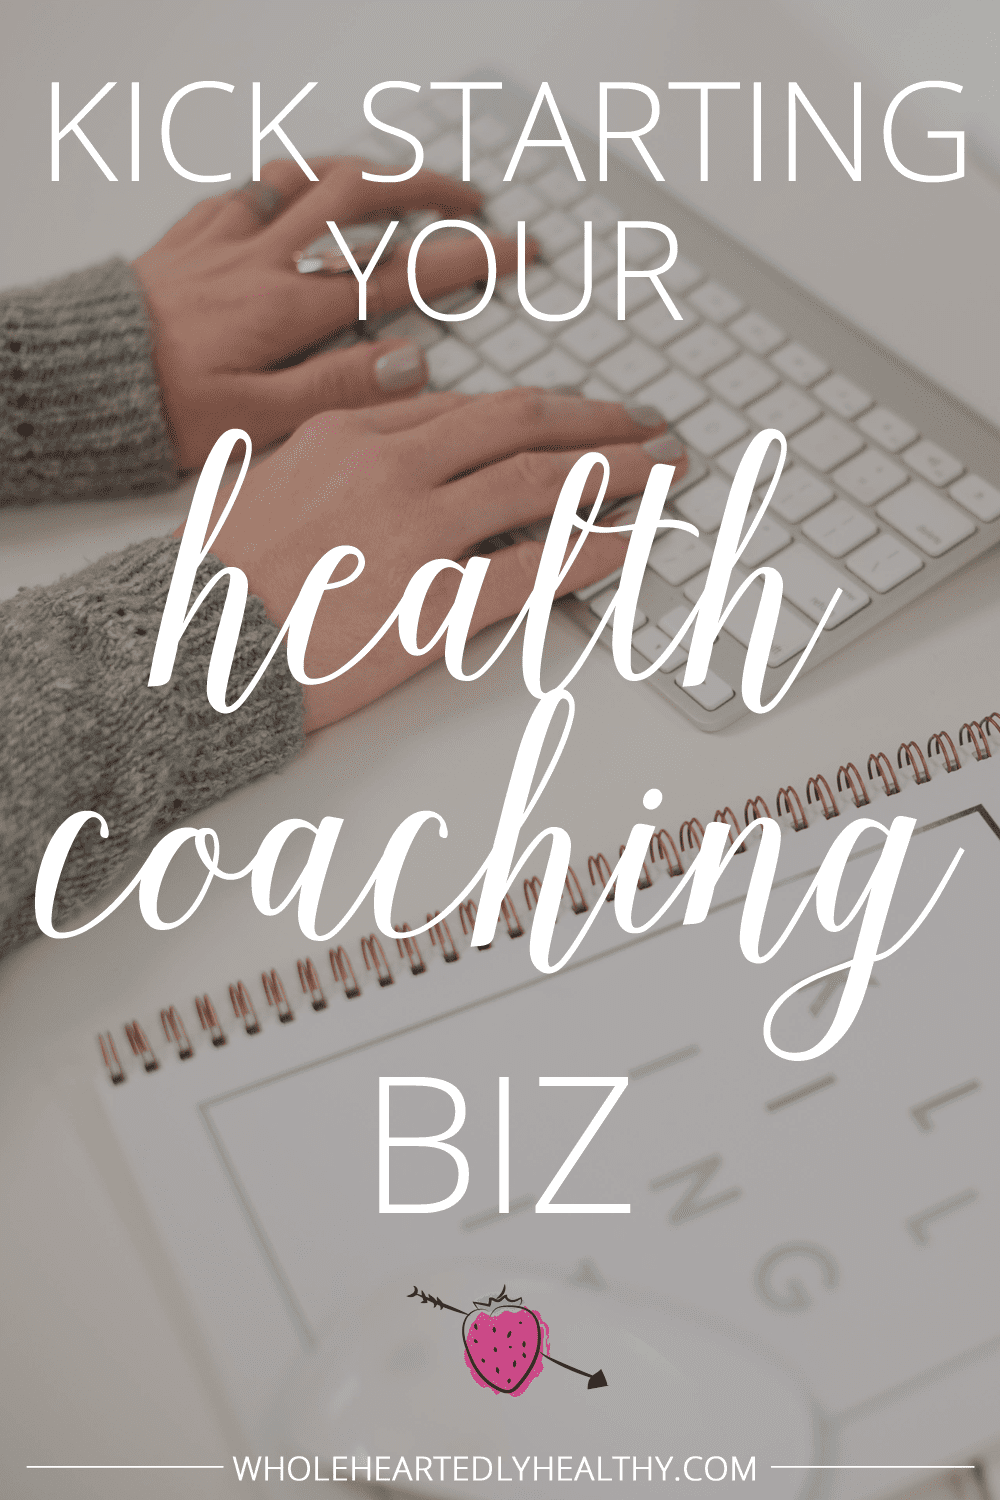 Kick starting your health coaching biz